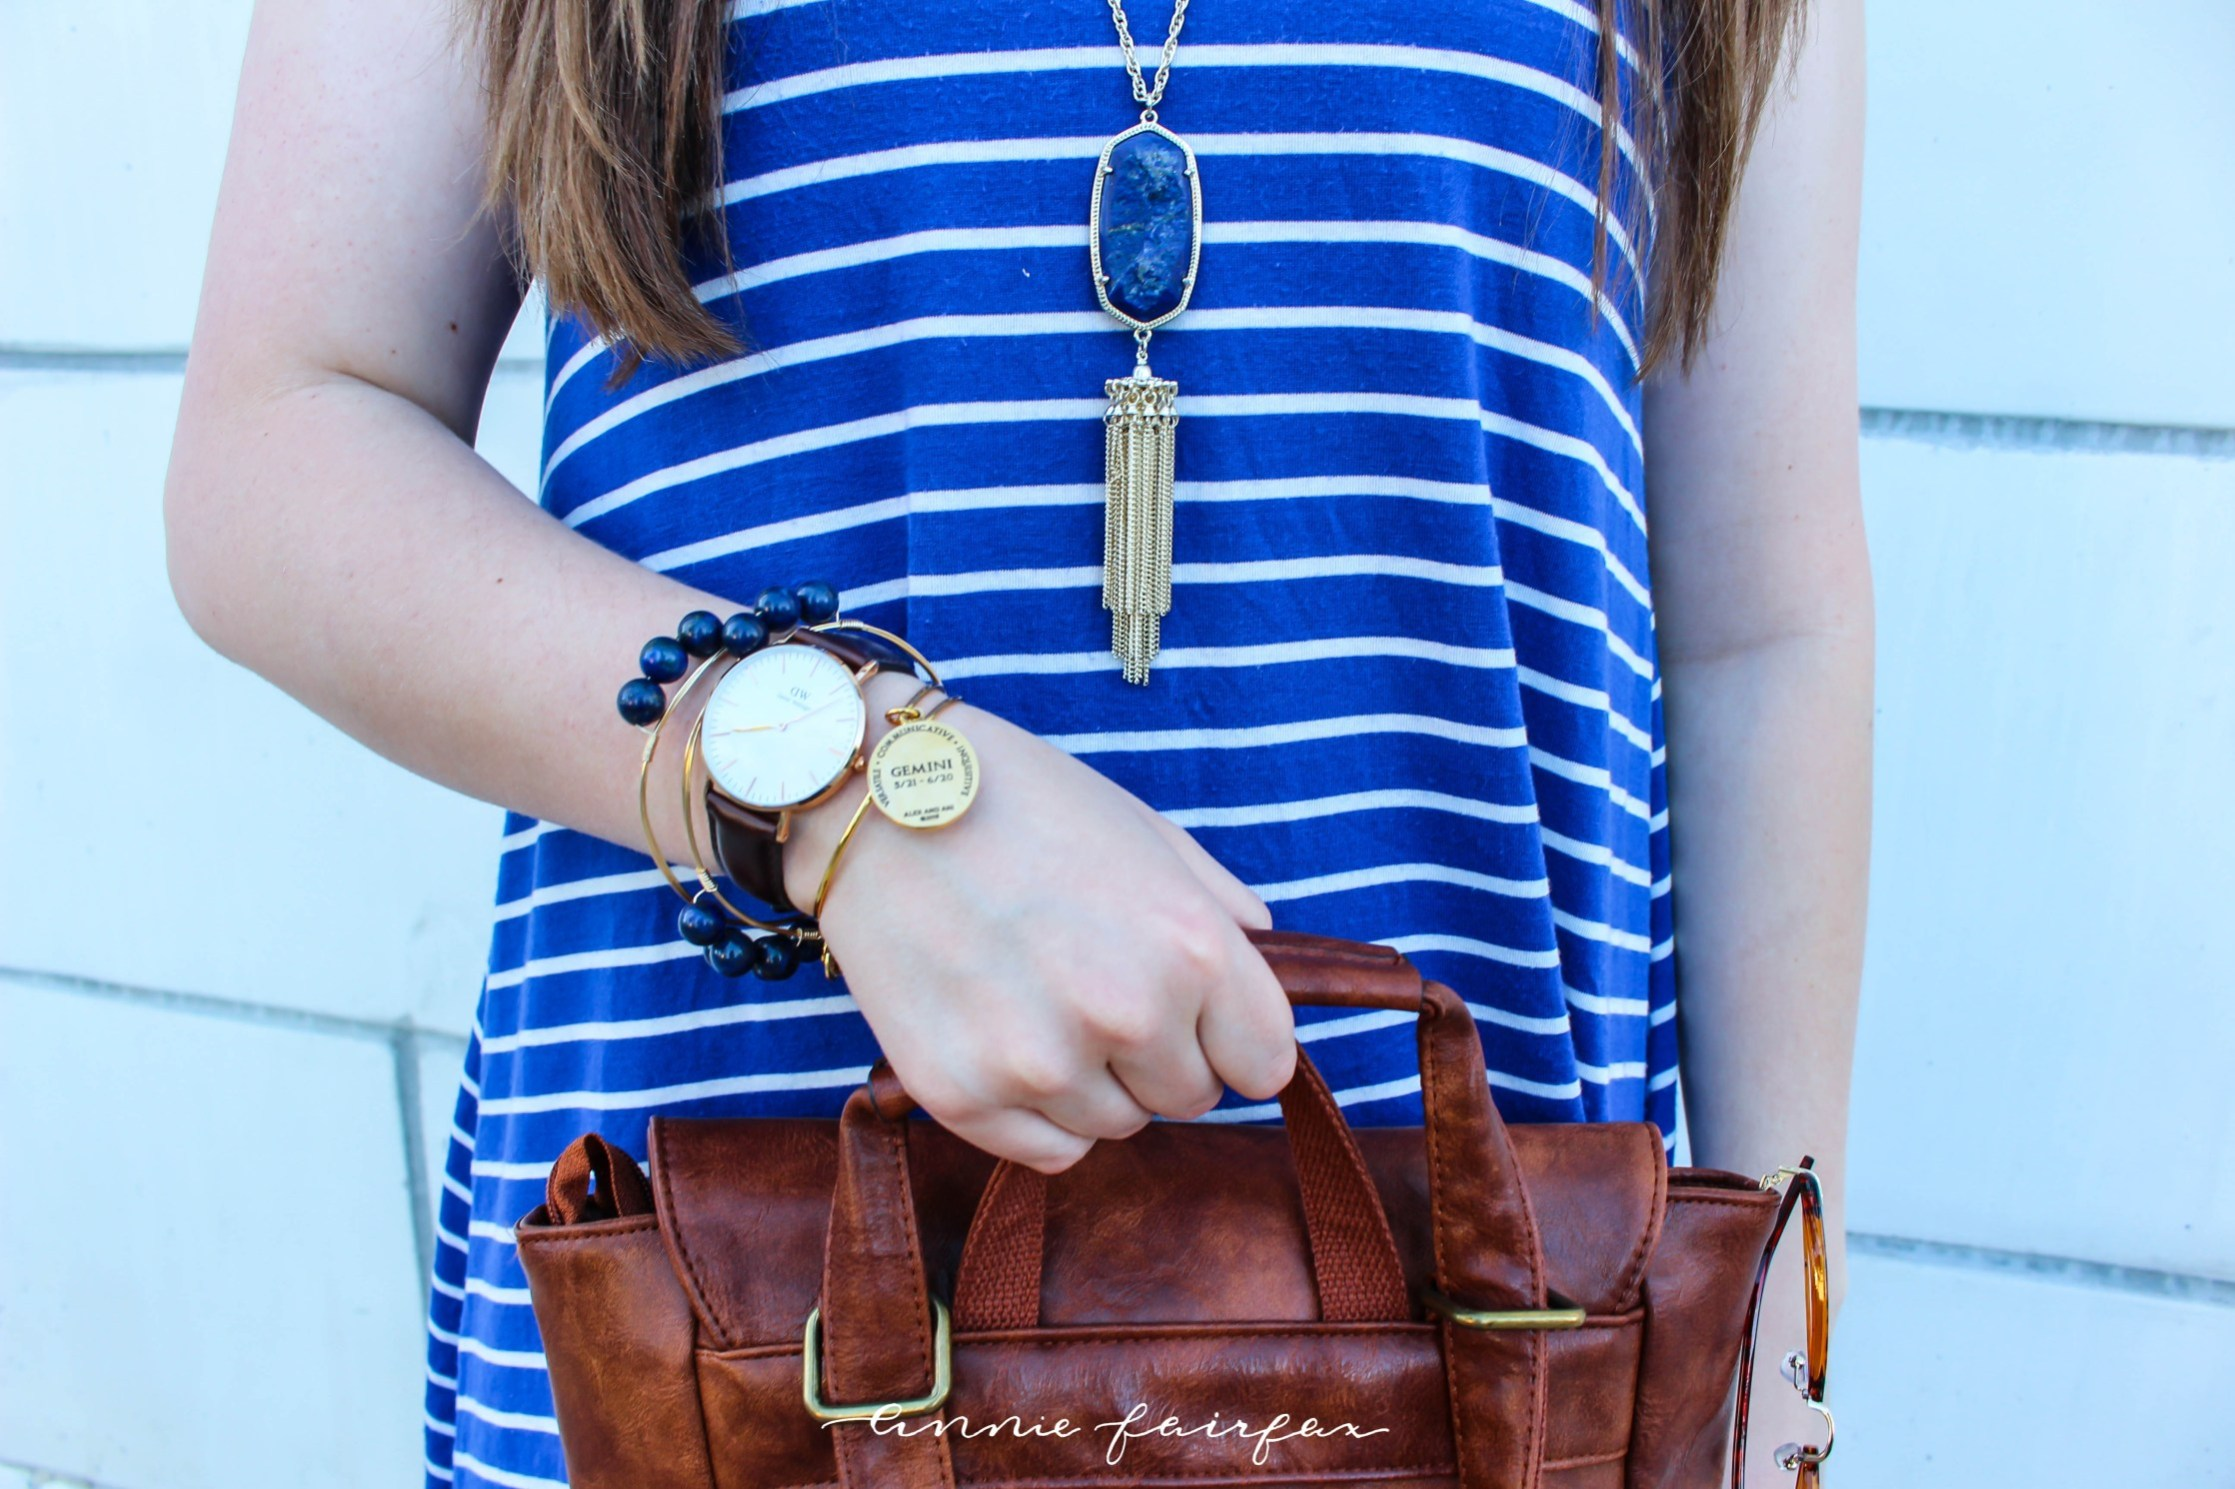 Blue Geminie Celestial Lapis Lazuli Outfit Romwe Striped Dress Daniel Wellington Alex & Ani Leather Backpack